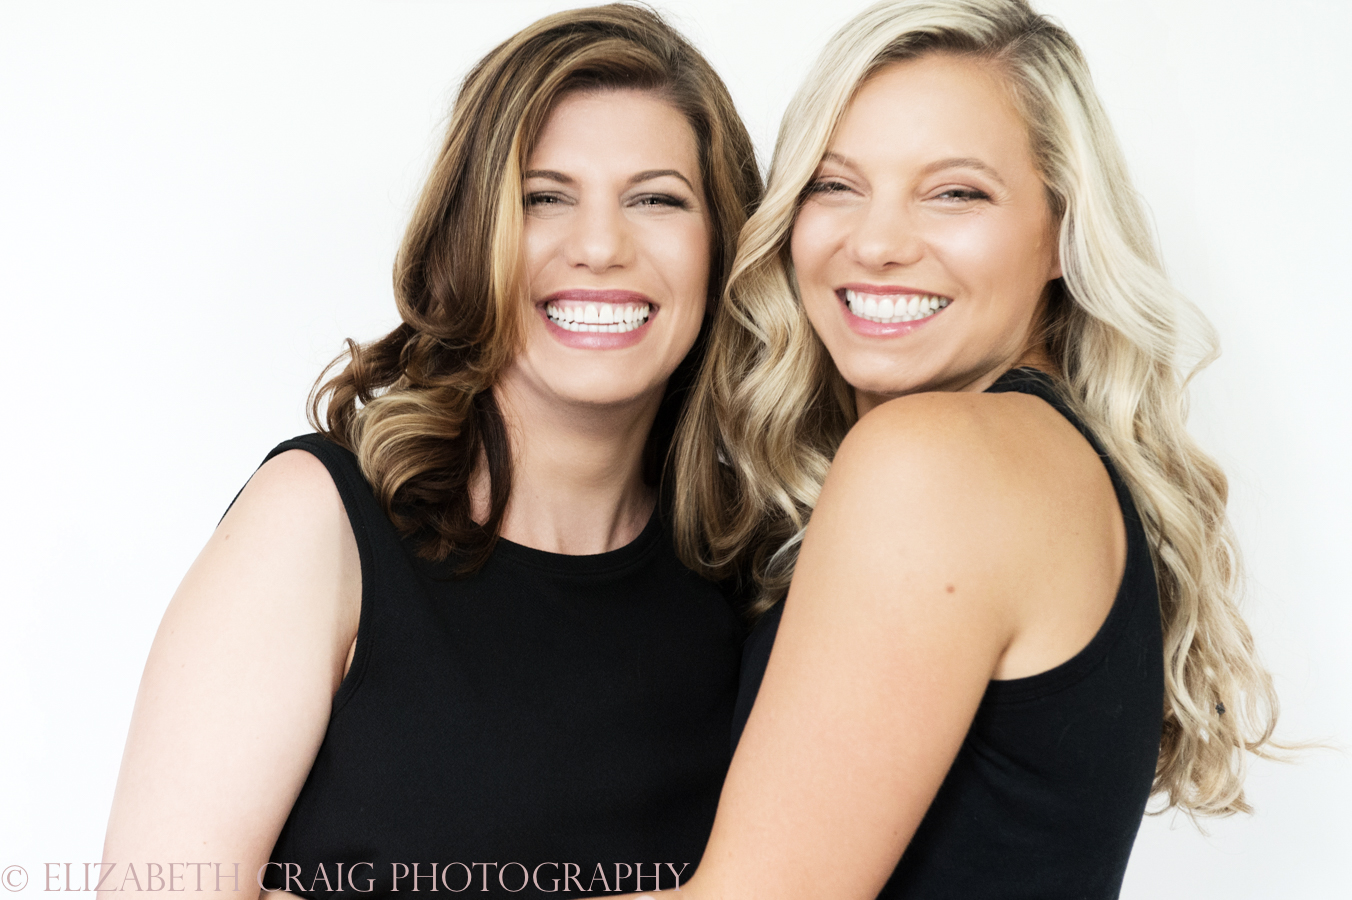 Pittsburgh Mother Daughter Sister Photographer | Elizabeth Craig Photography-002